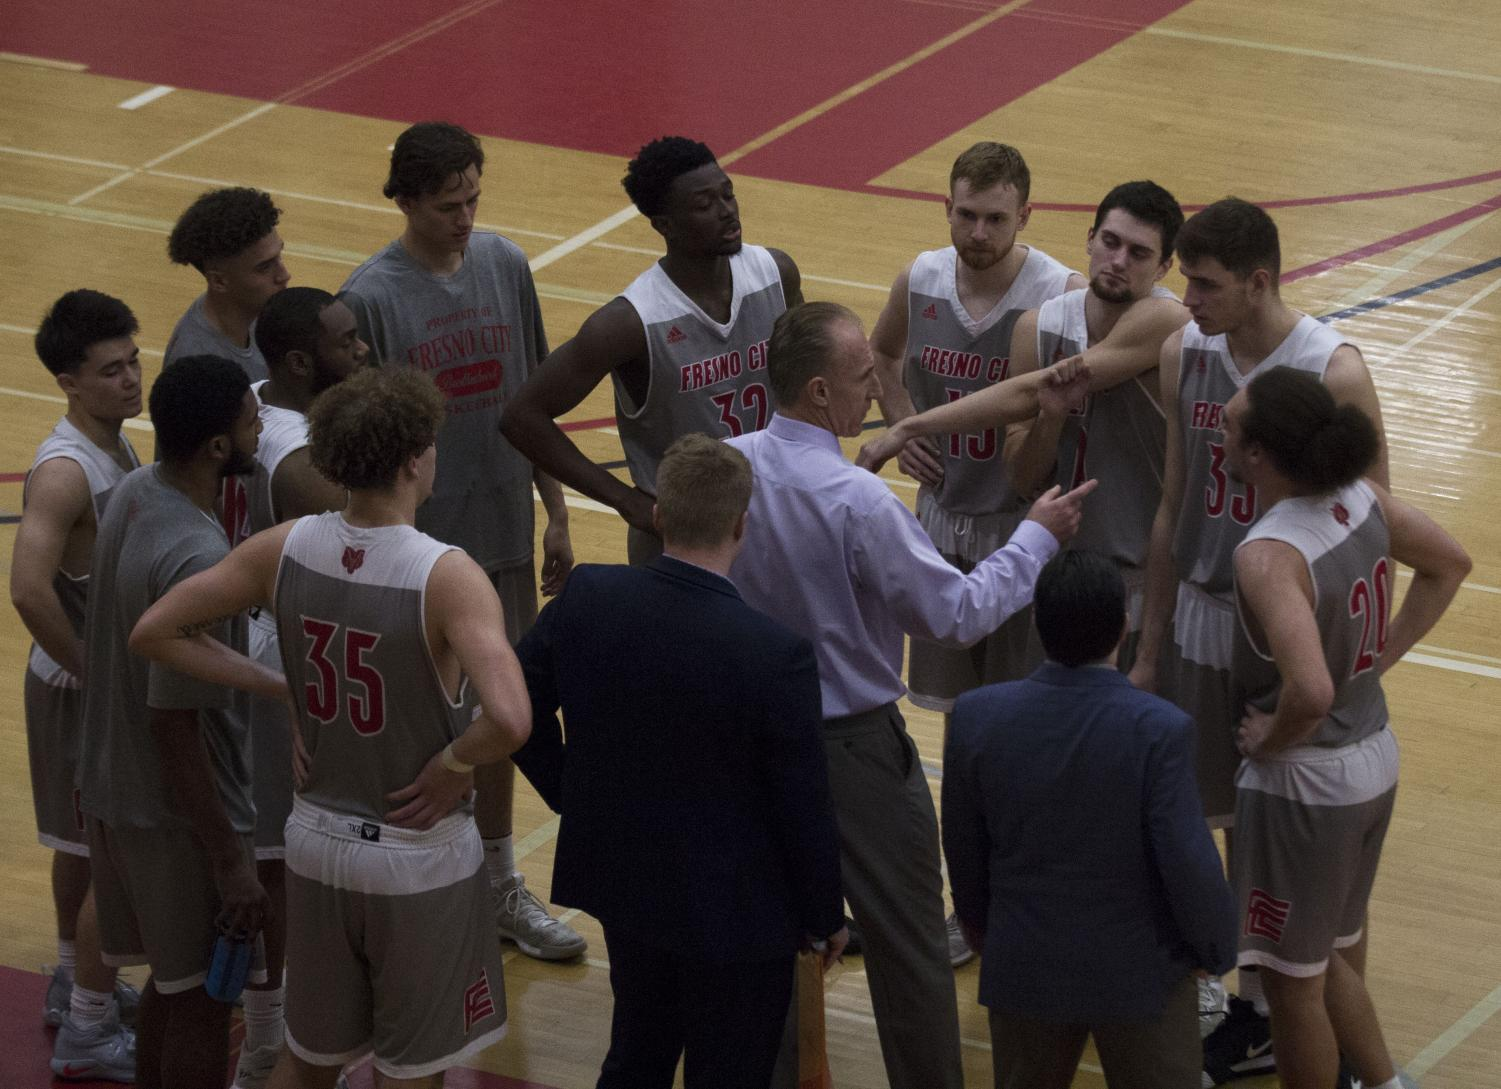 The Rams Men's basketball team surrounds head coach Ed Madec as he prepares them for the second half of their round 2 regional playoff game against Sacramento City College on March 2, 2019.